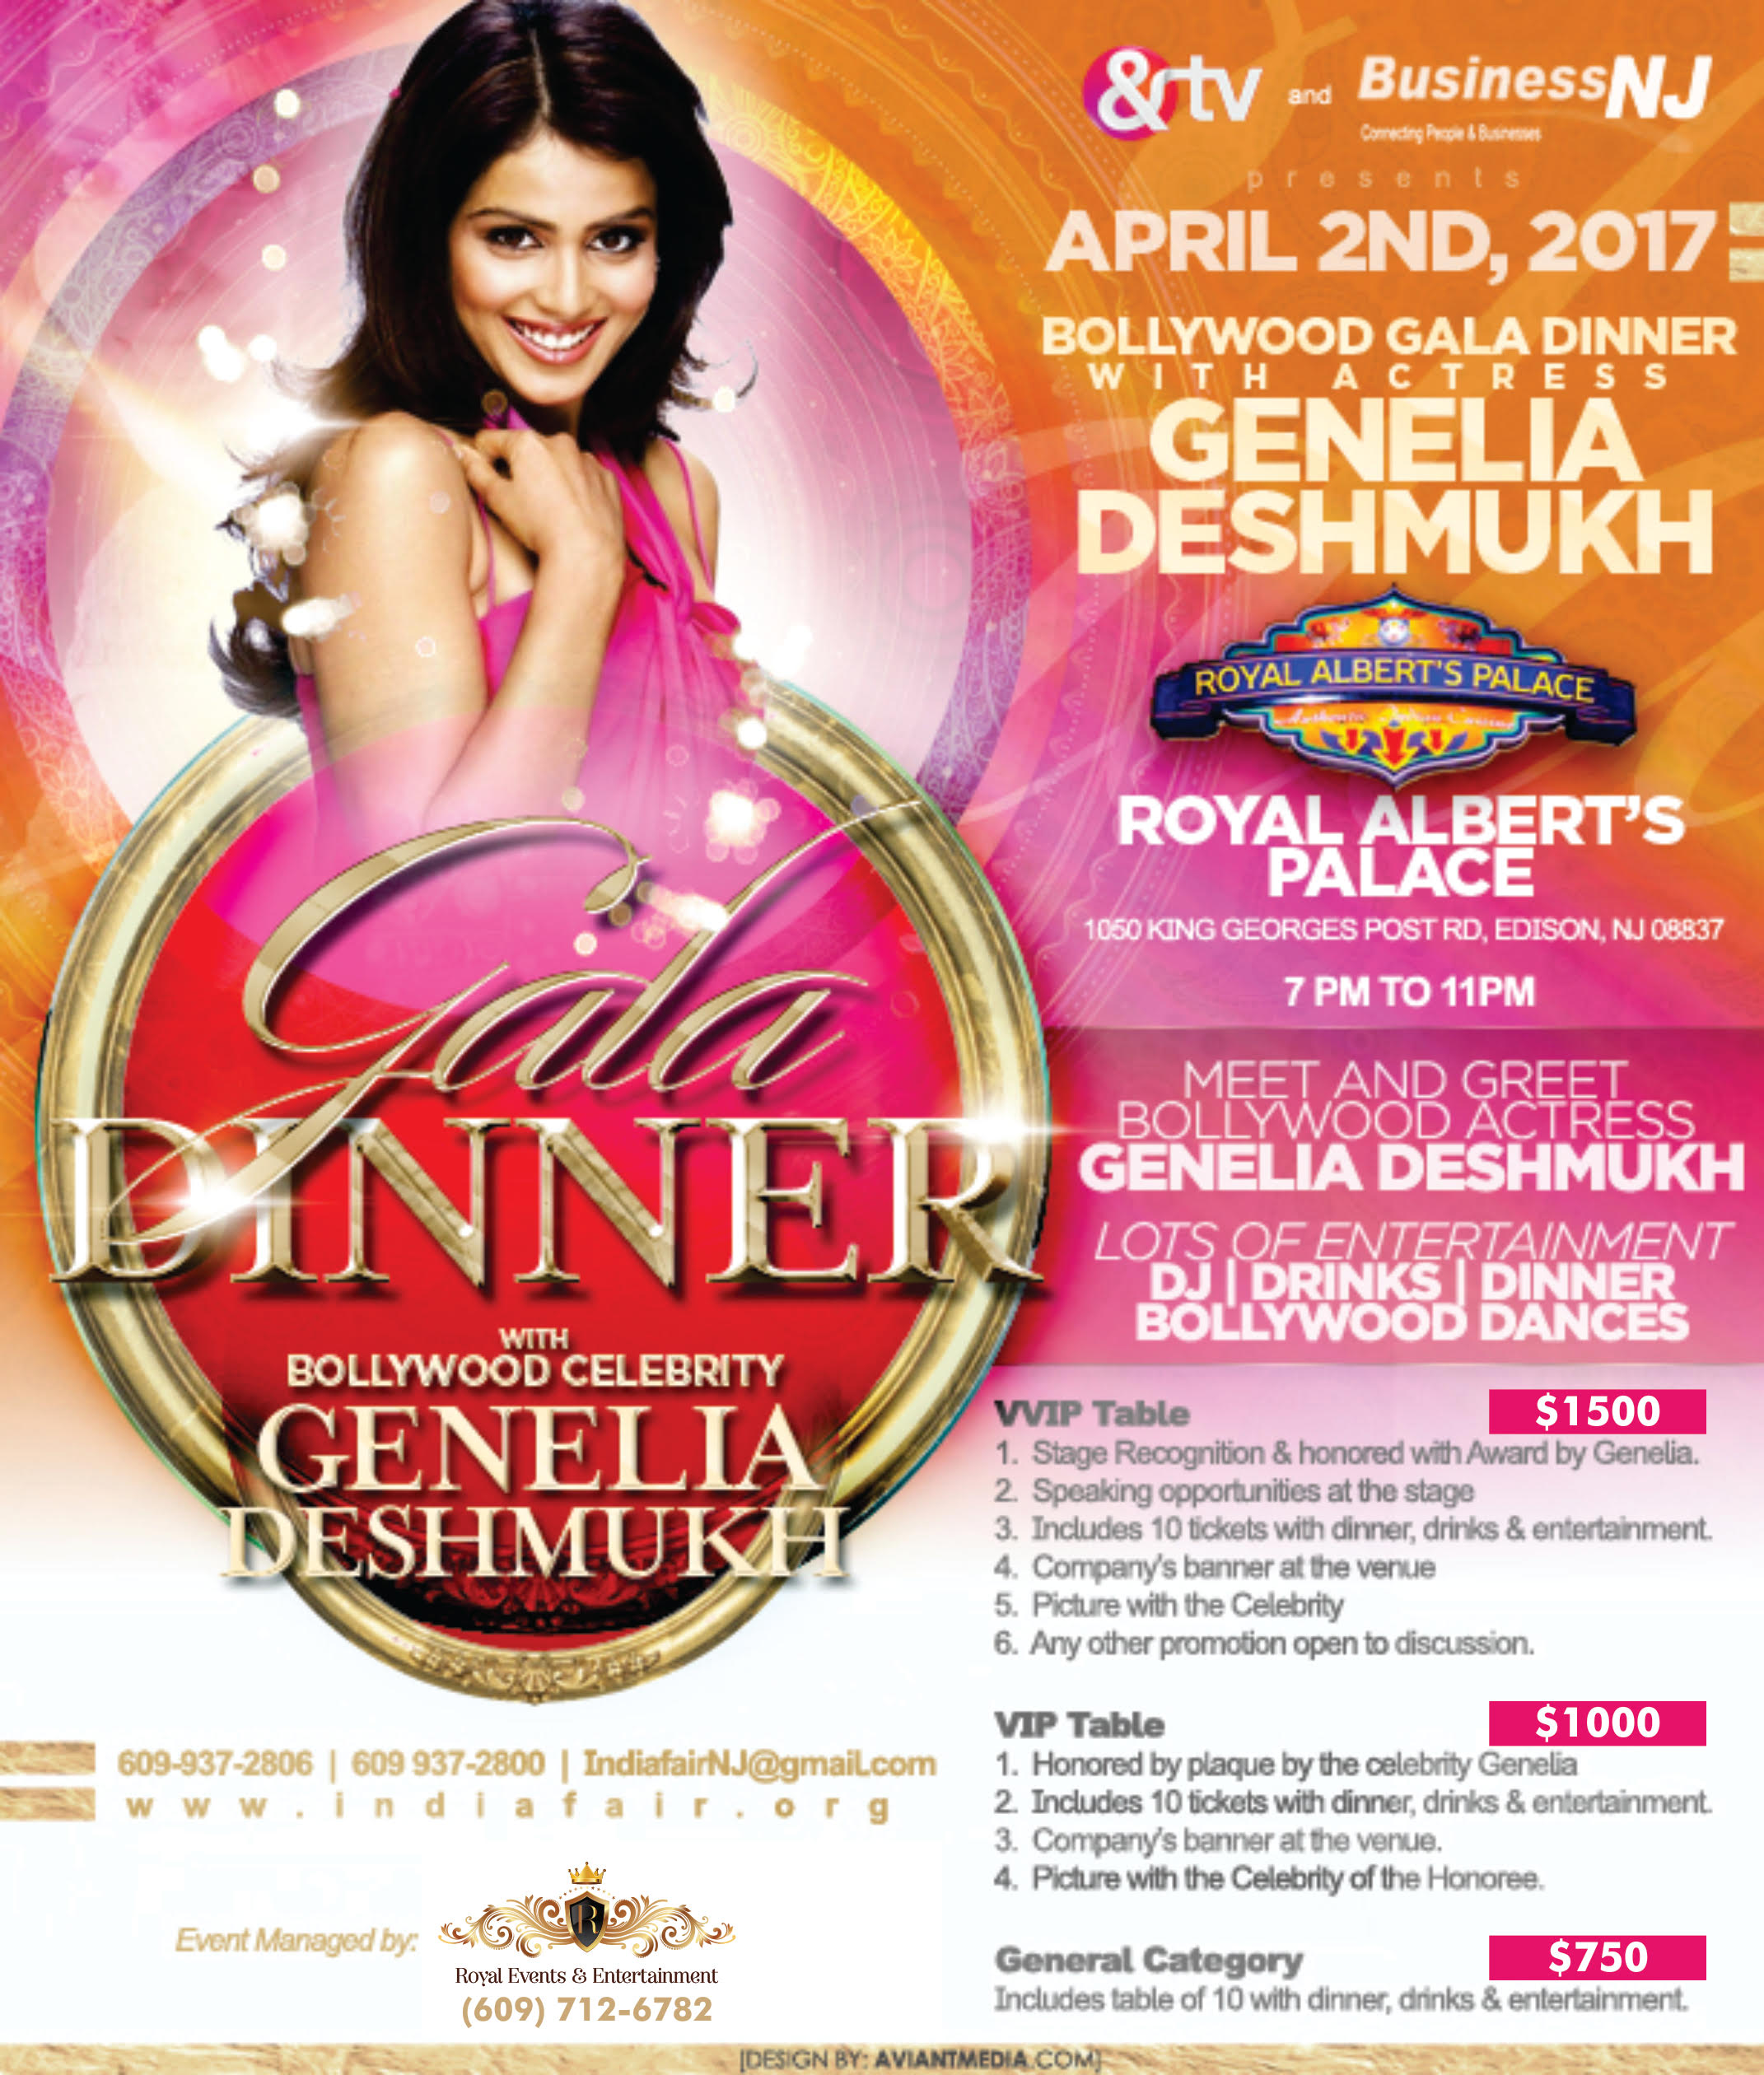 INDIA FAIR Gala Dinner with Genelia D'Souza Deshmukh